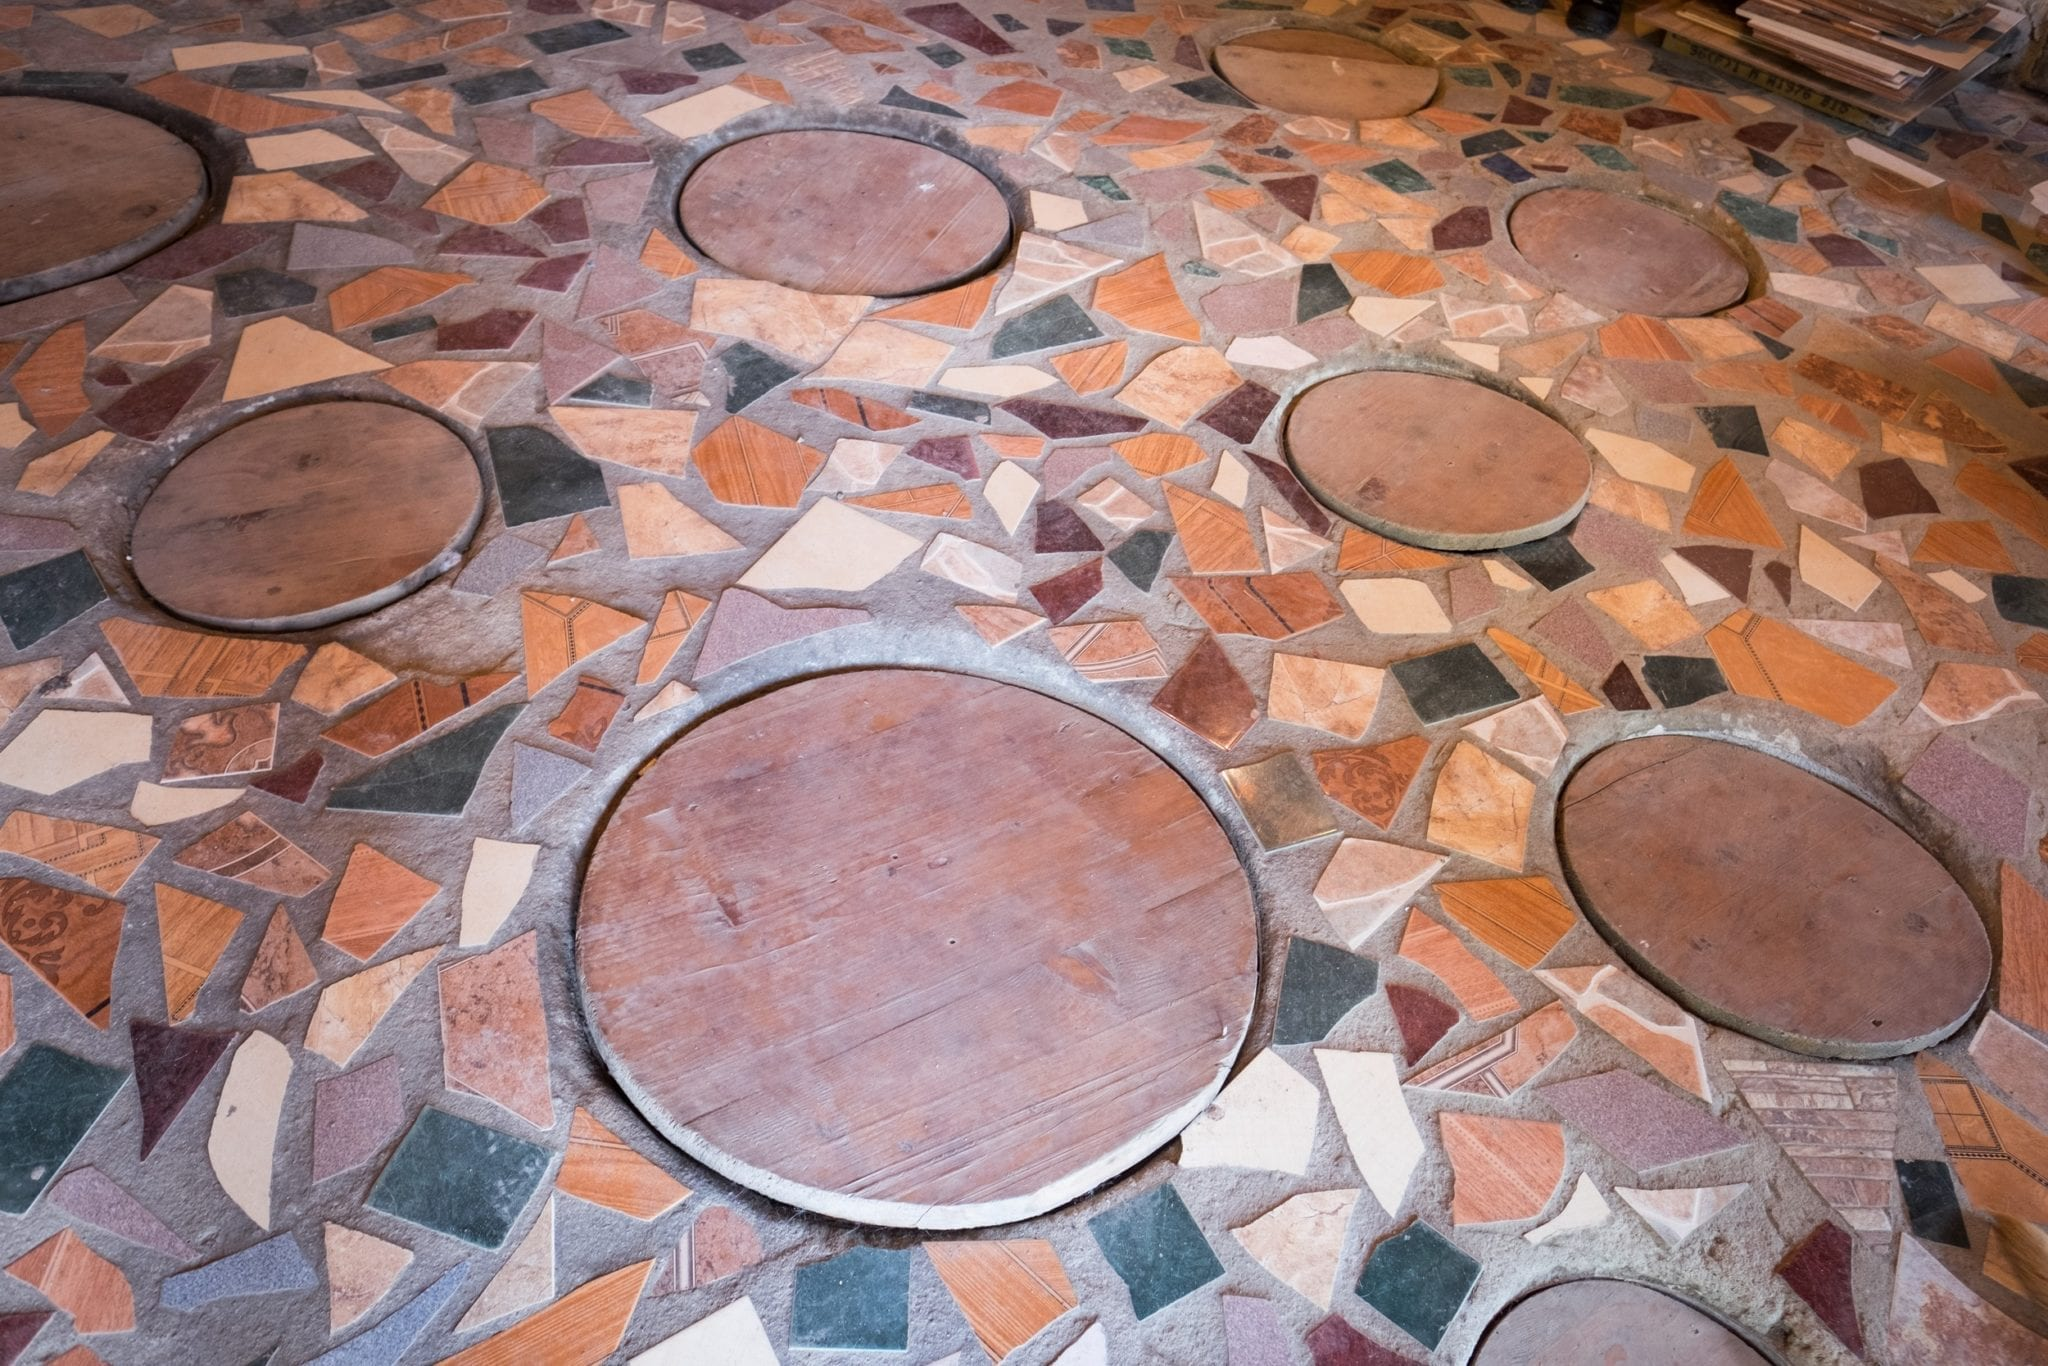 Round holes in a tiled floor where the Georgian qvevri wine is fermented.